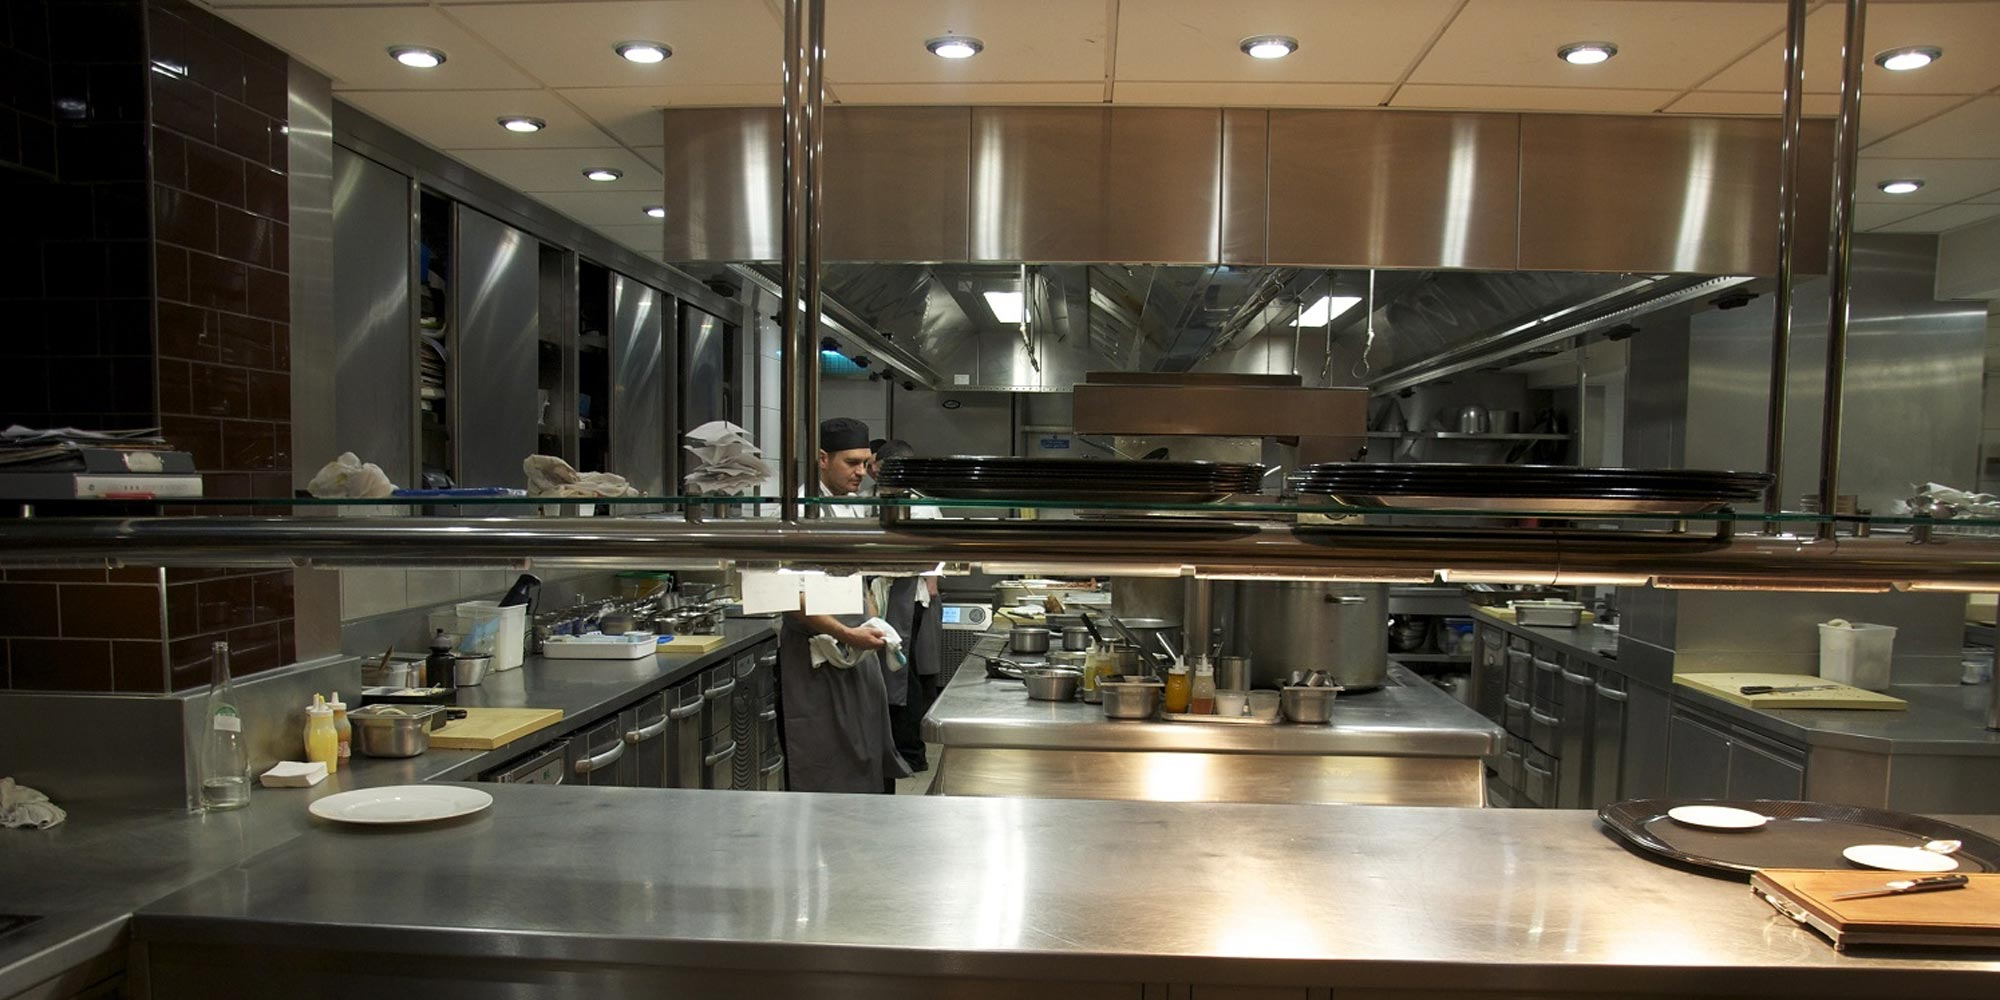 PLANNING A KITCHEN RESTAURANT: THE EQUIPMENT